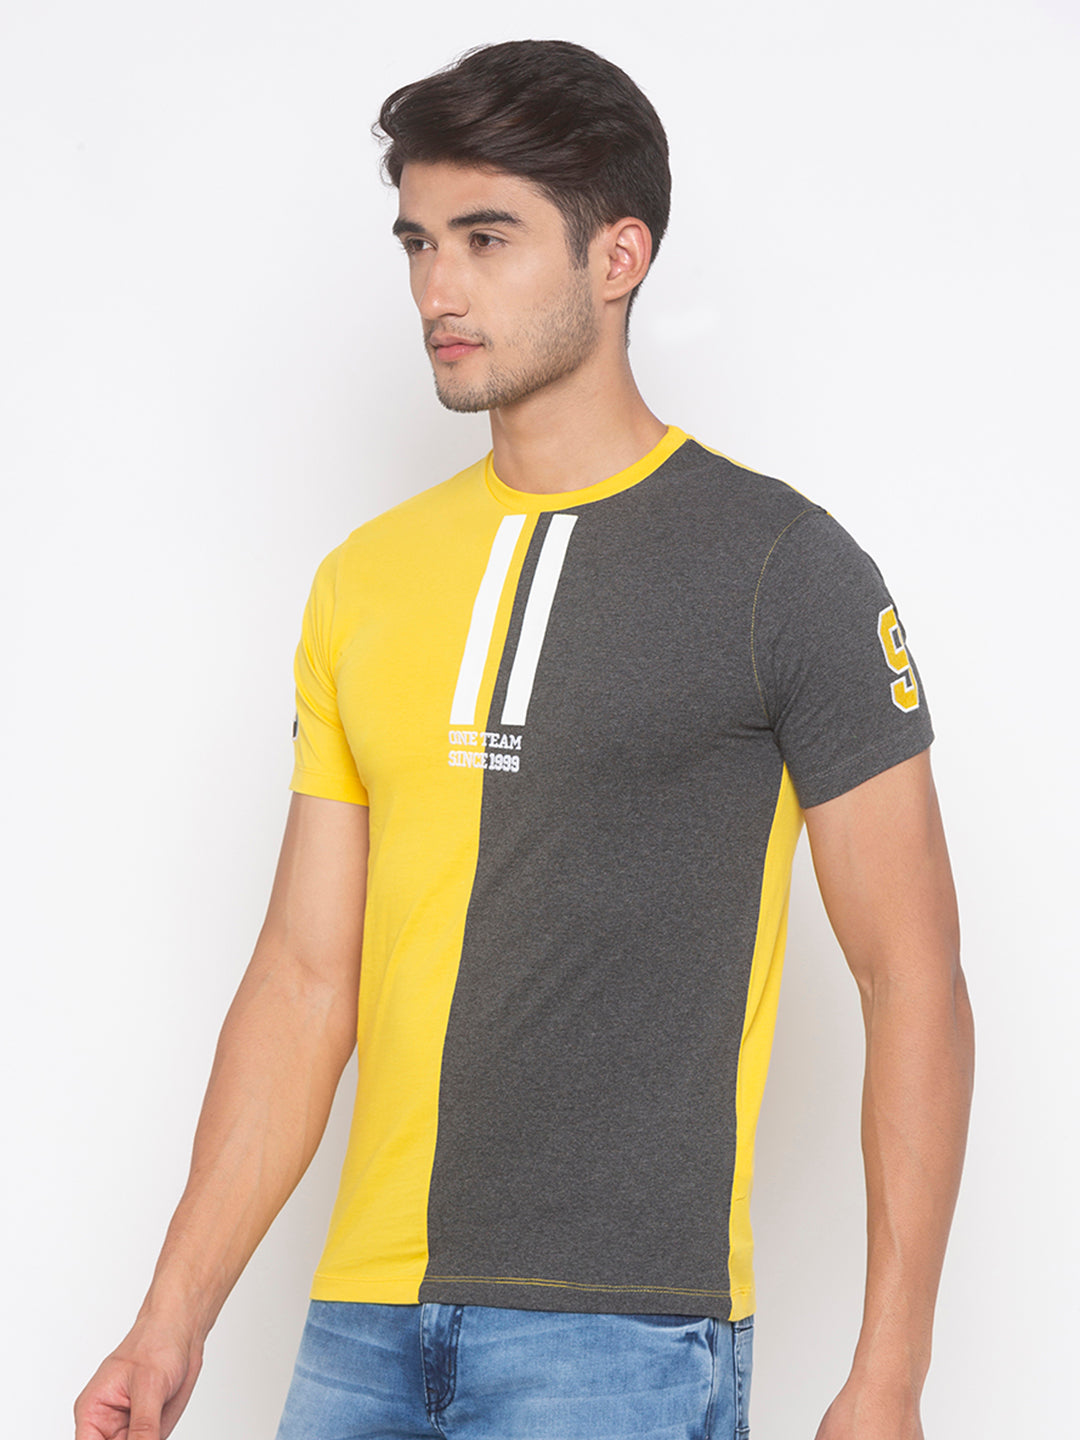 Globus Yellow & Grey Color Block T-Shirt-2